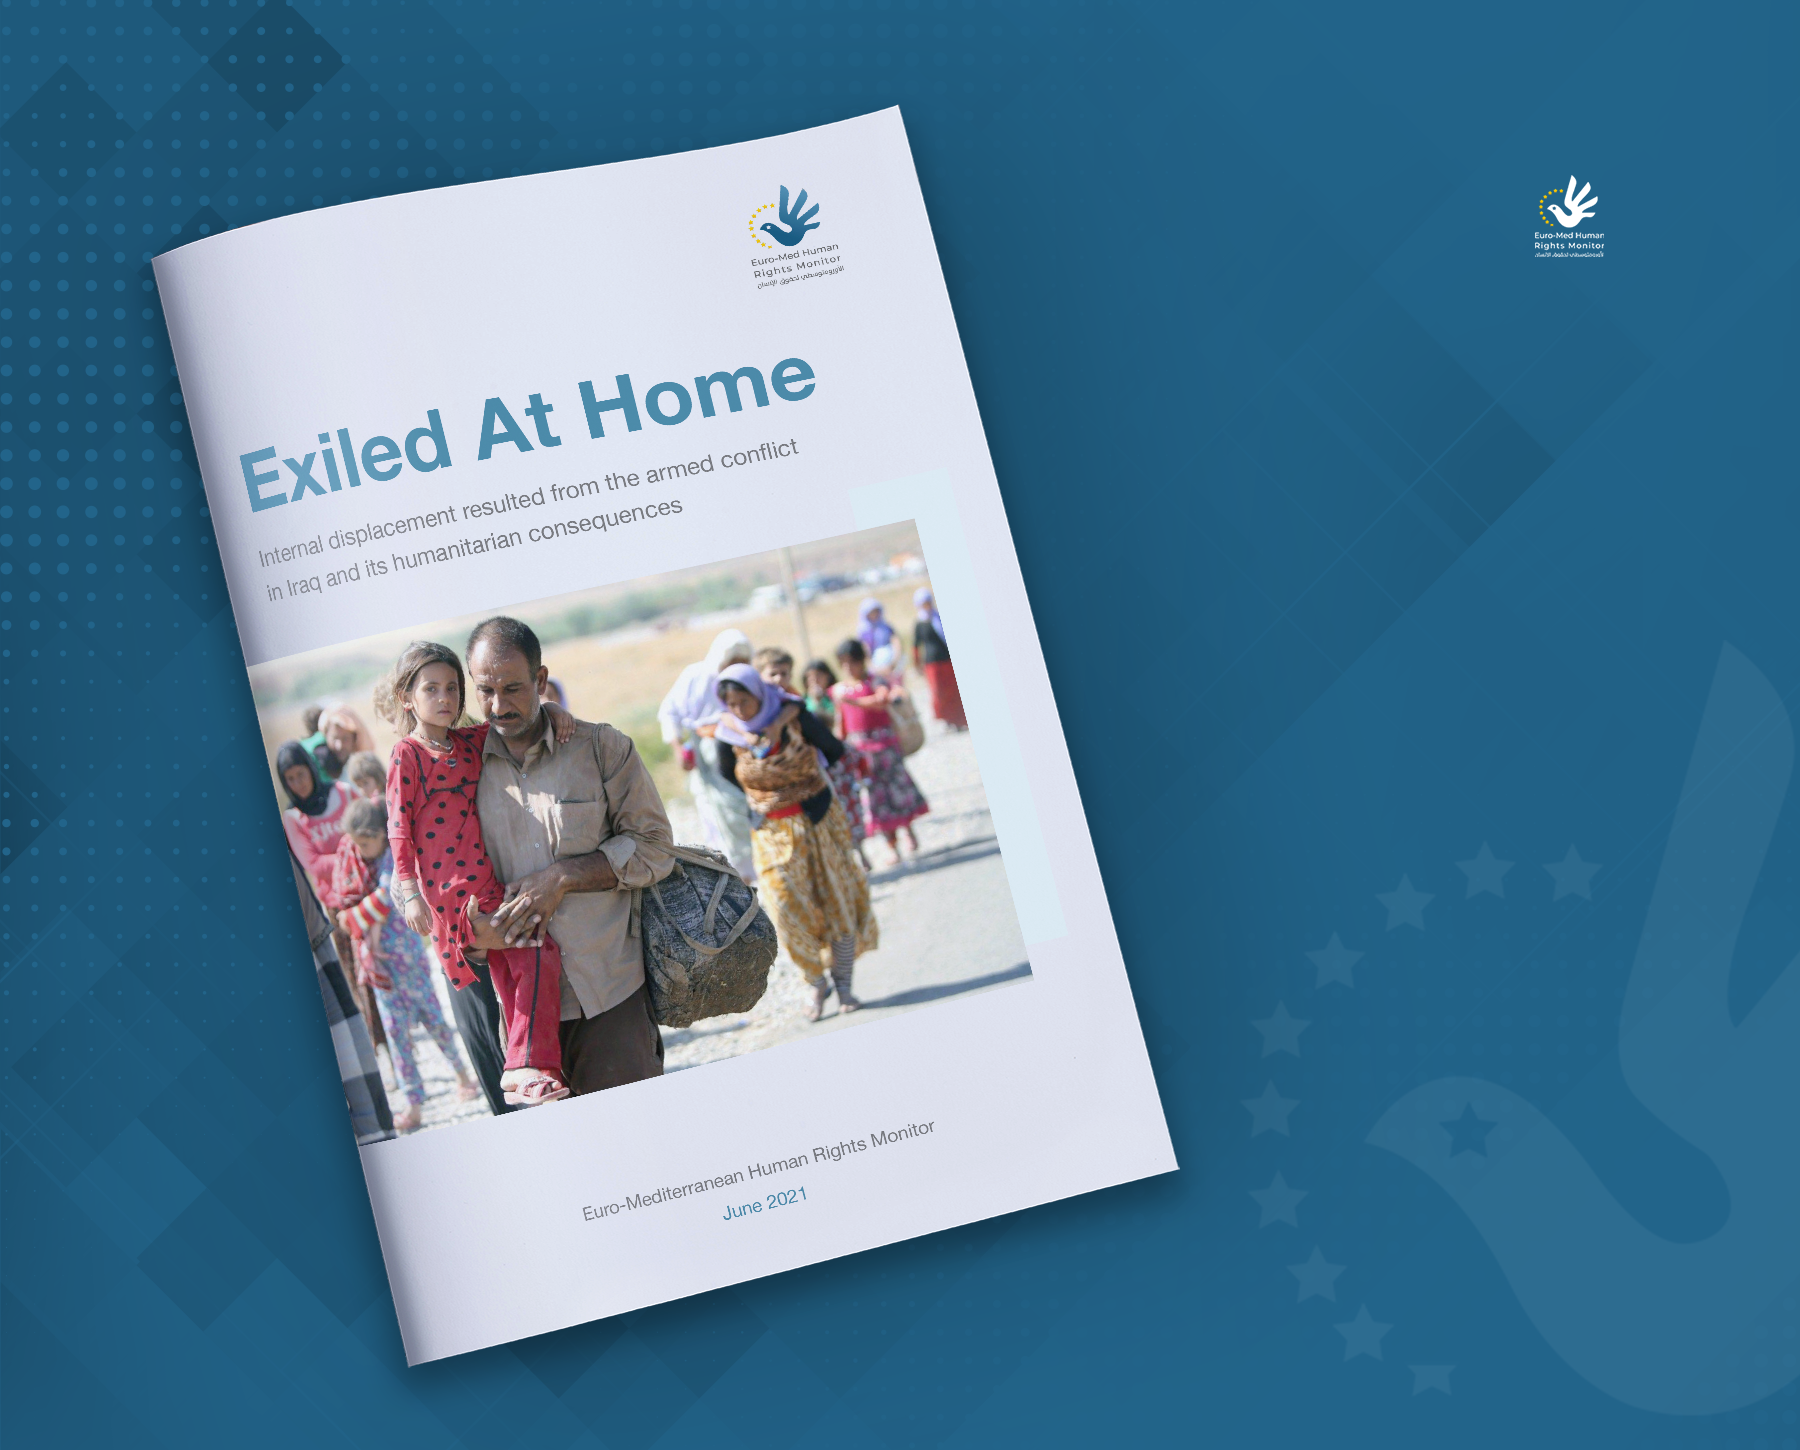 Exiled At Home: Internal displacement resulted from the armed conflict in Iraq and its humanitarian consequences